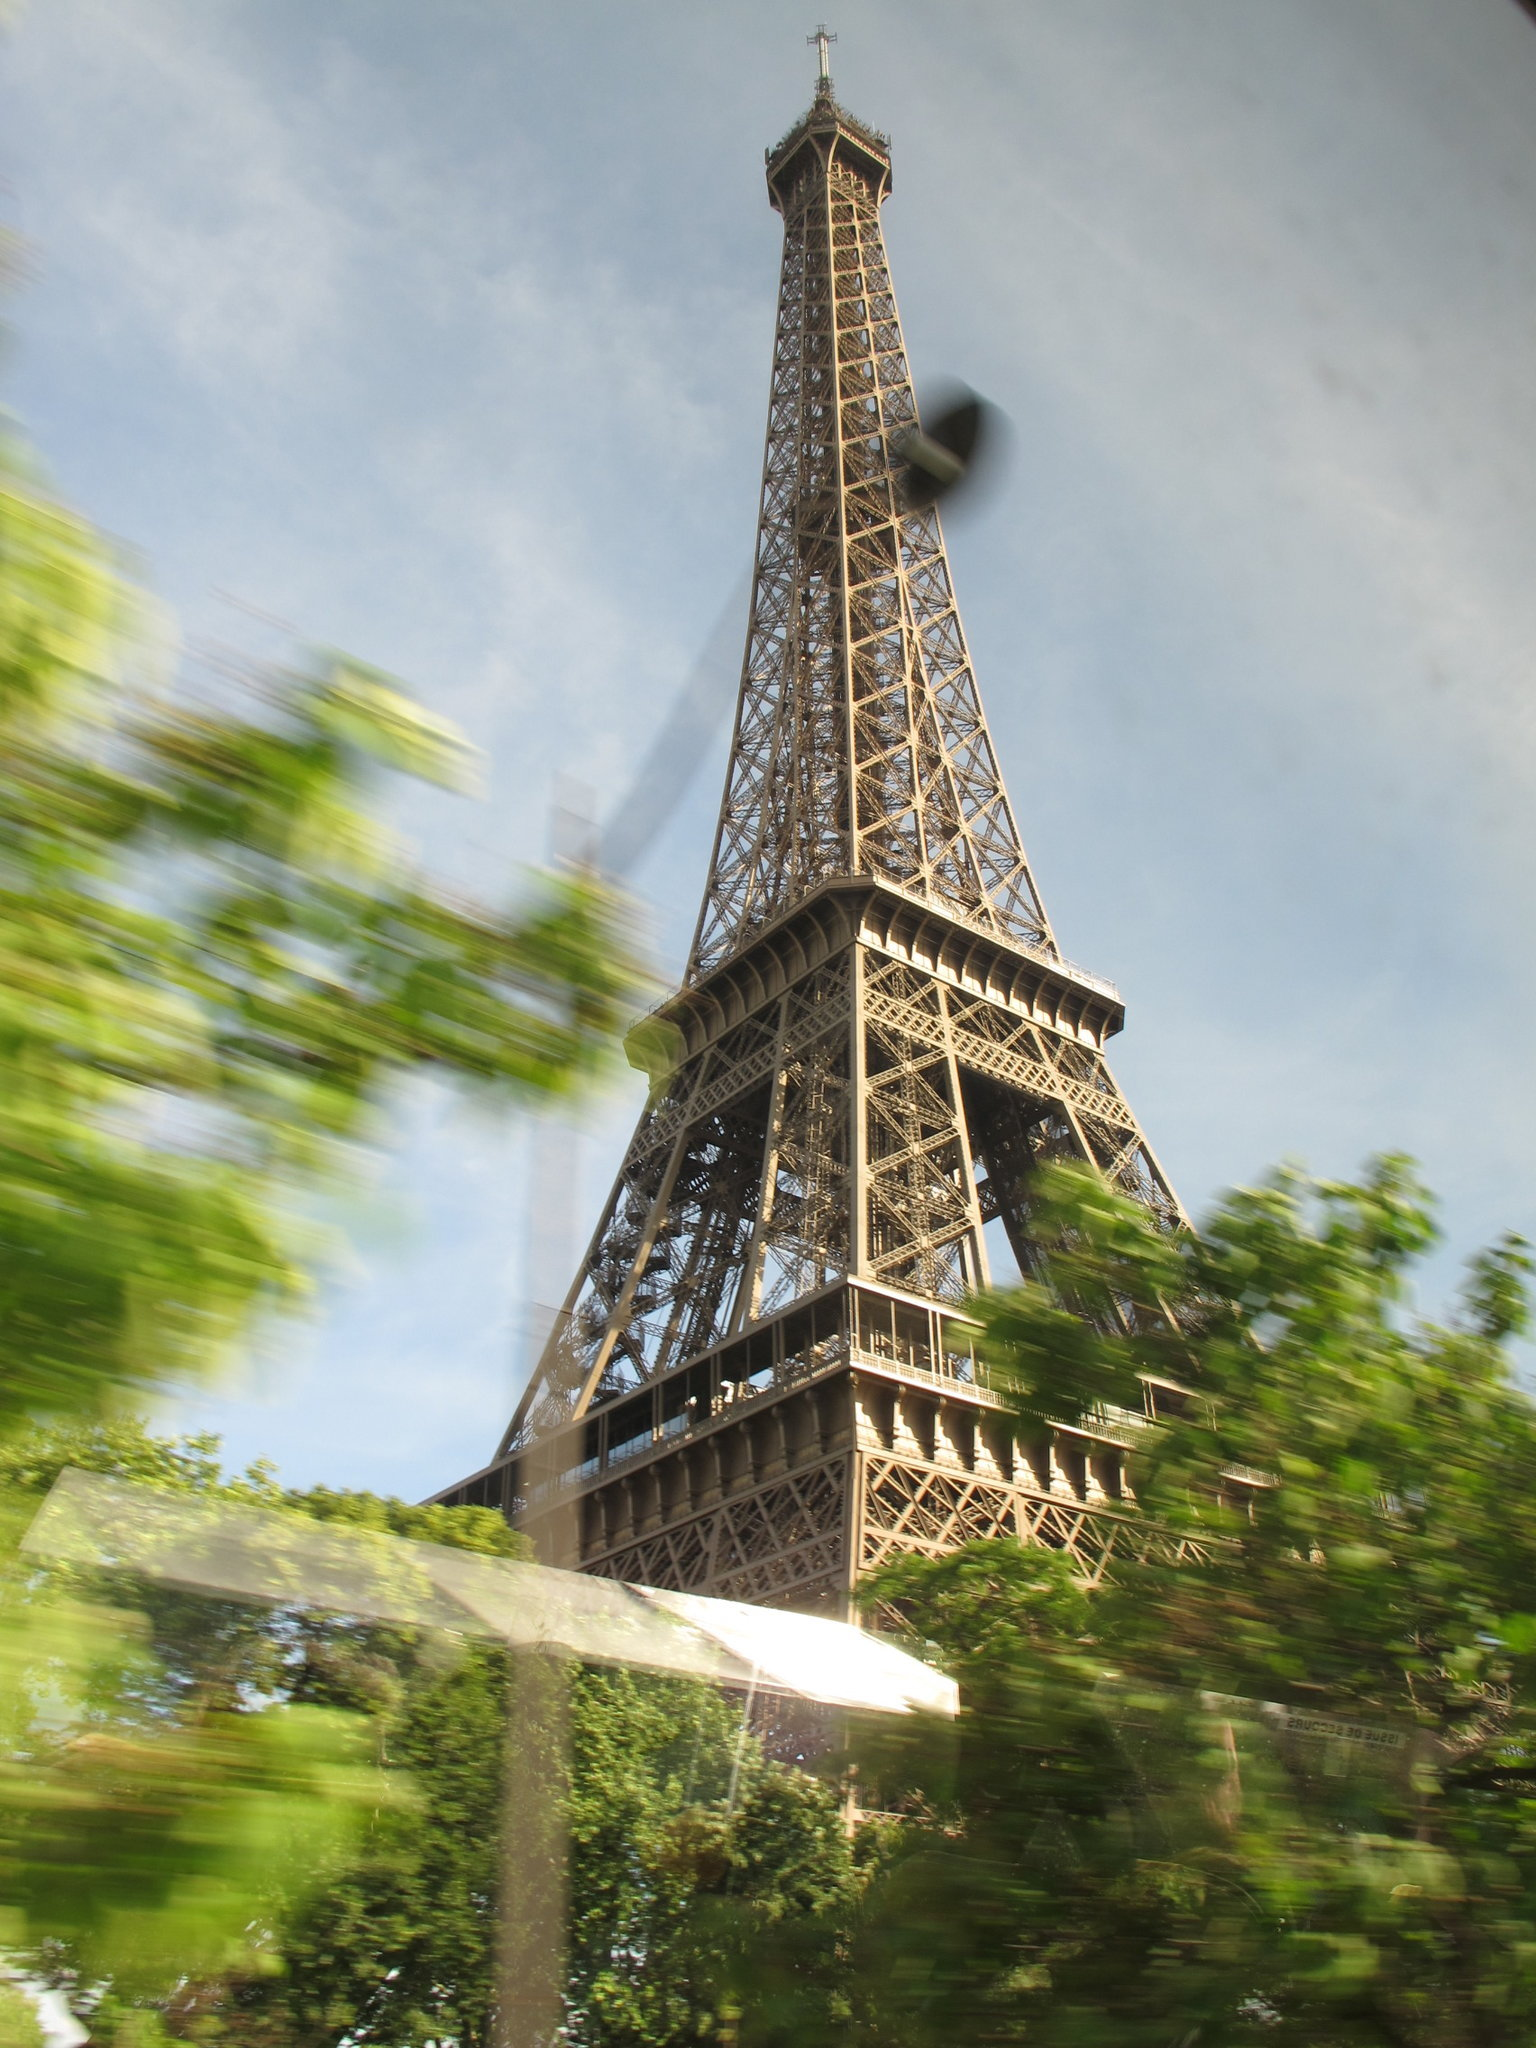 © CORDAY - Eiffel In Motion, No. 2